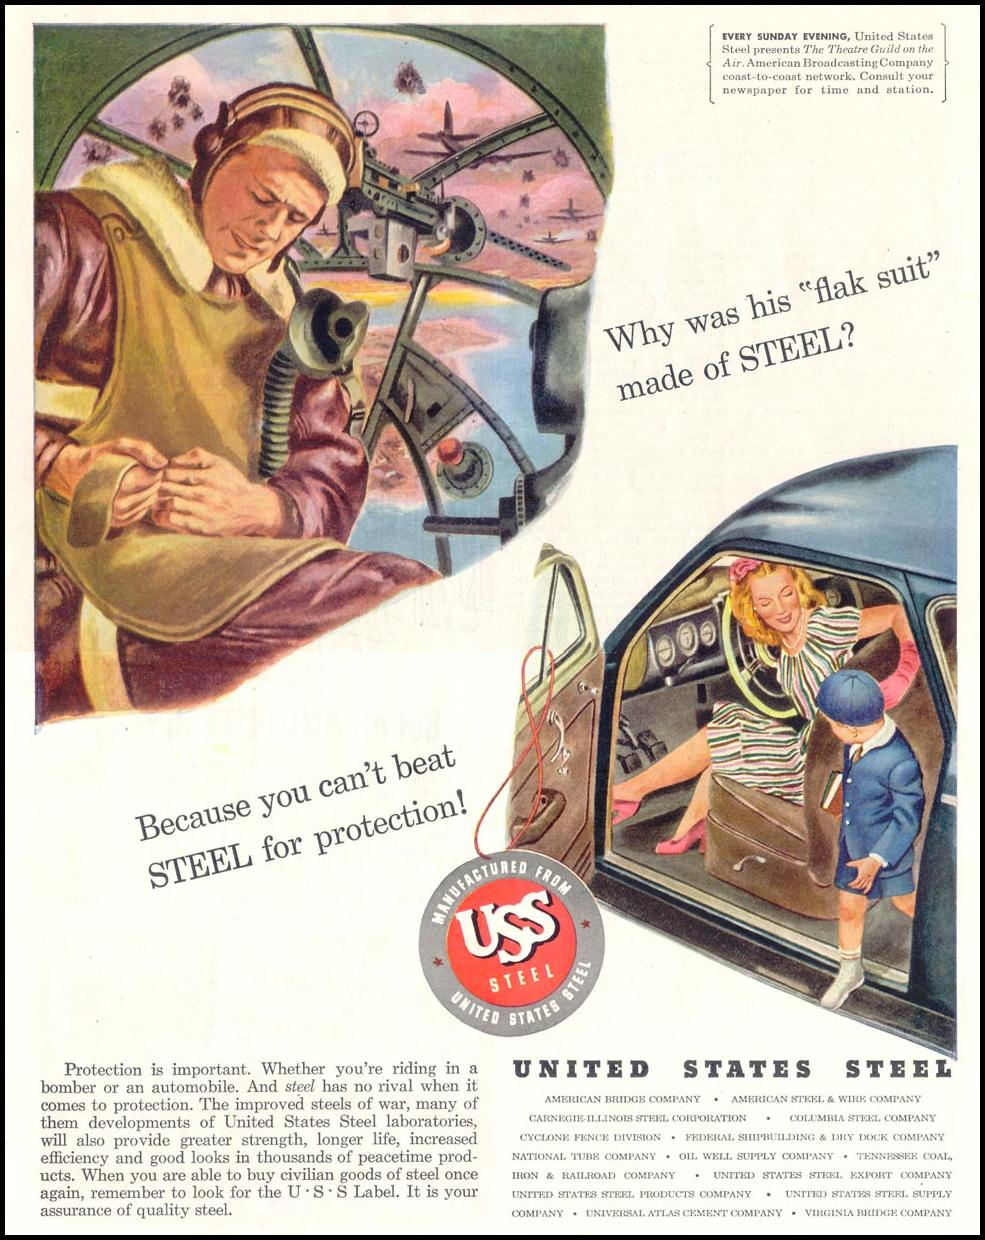 UNITED STATES STEEL